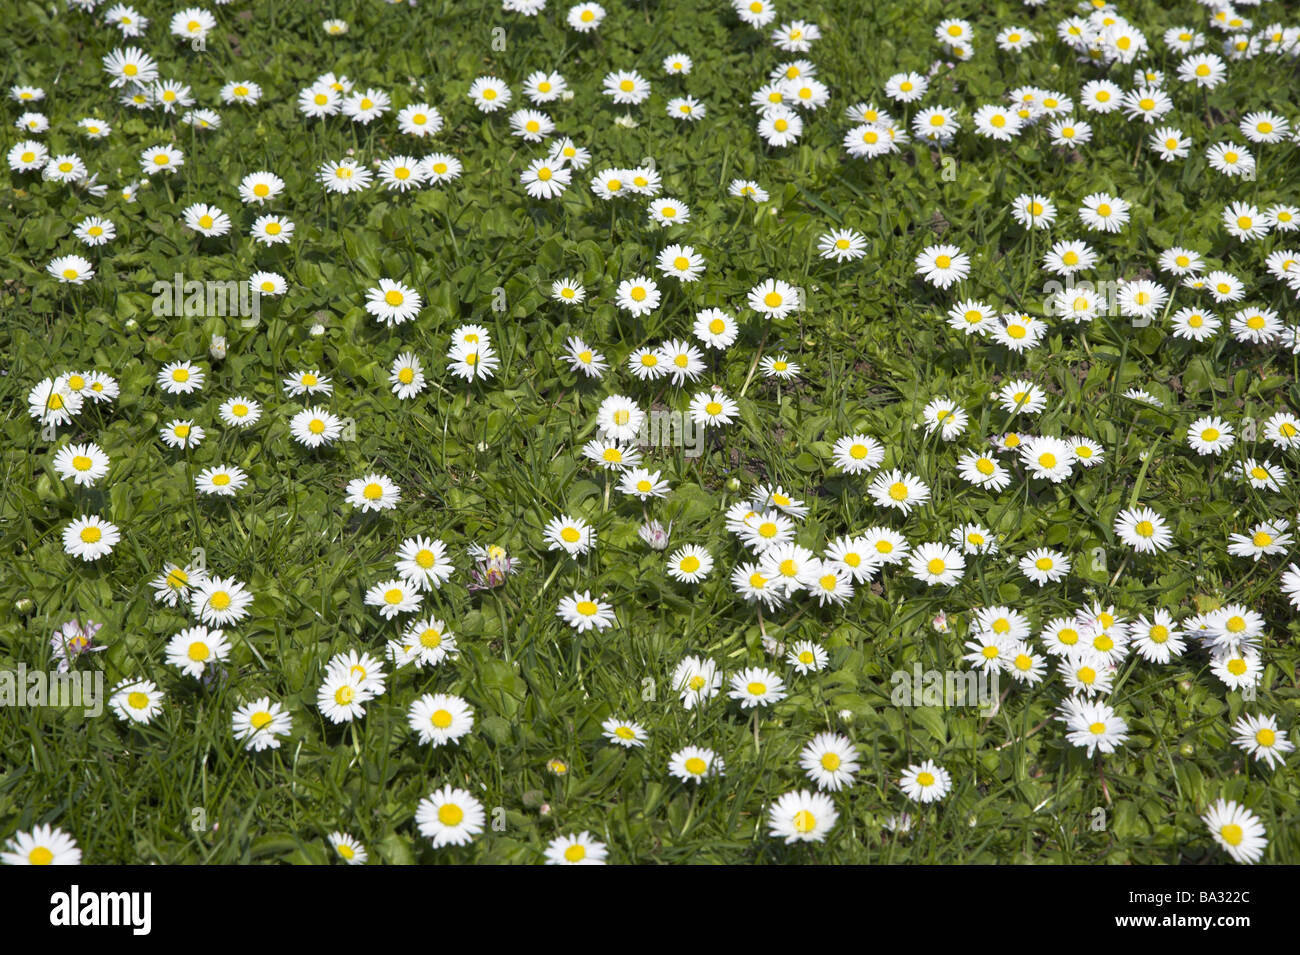 Flower meadow daisies bellis perennis nature flora vegetation botany flower meadow daisies bellis perennis nature flora vegetation botany meadow flowers daisy meadow blooms knows bloom sea grass izmirmasajfo